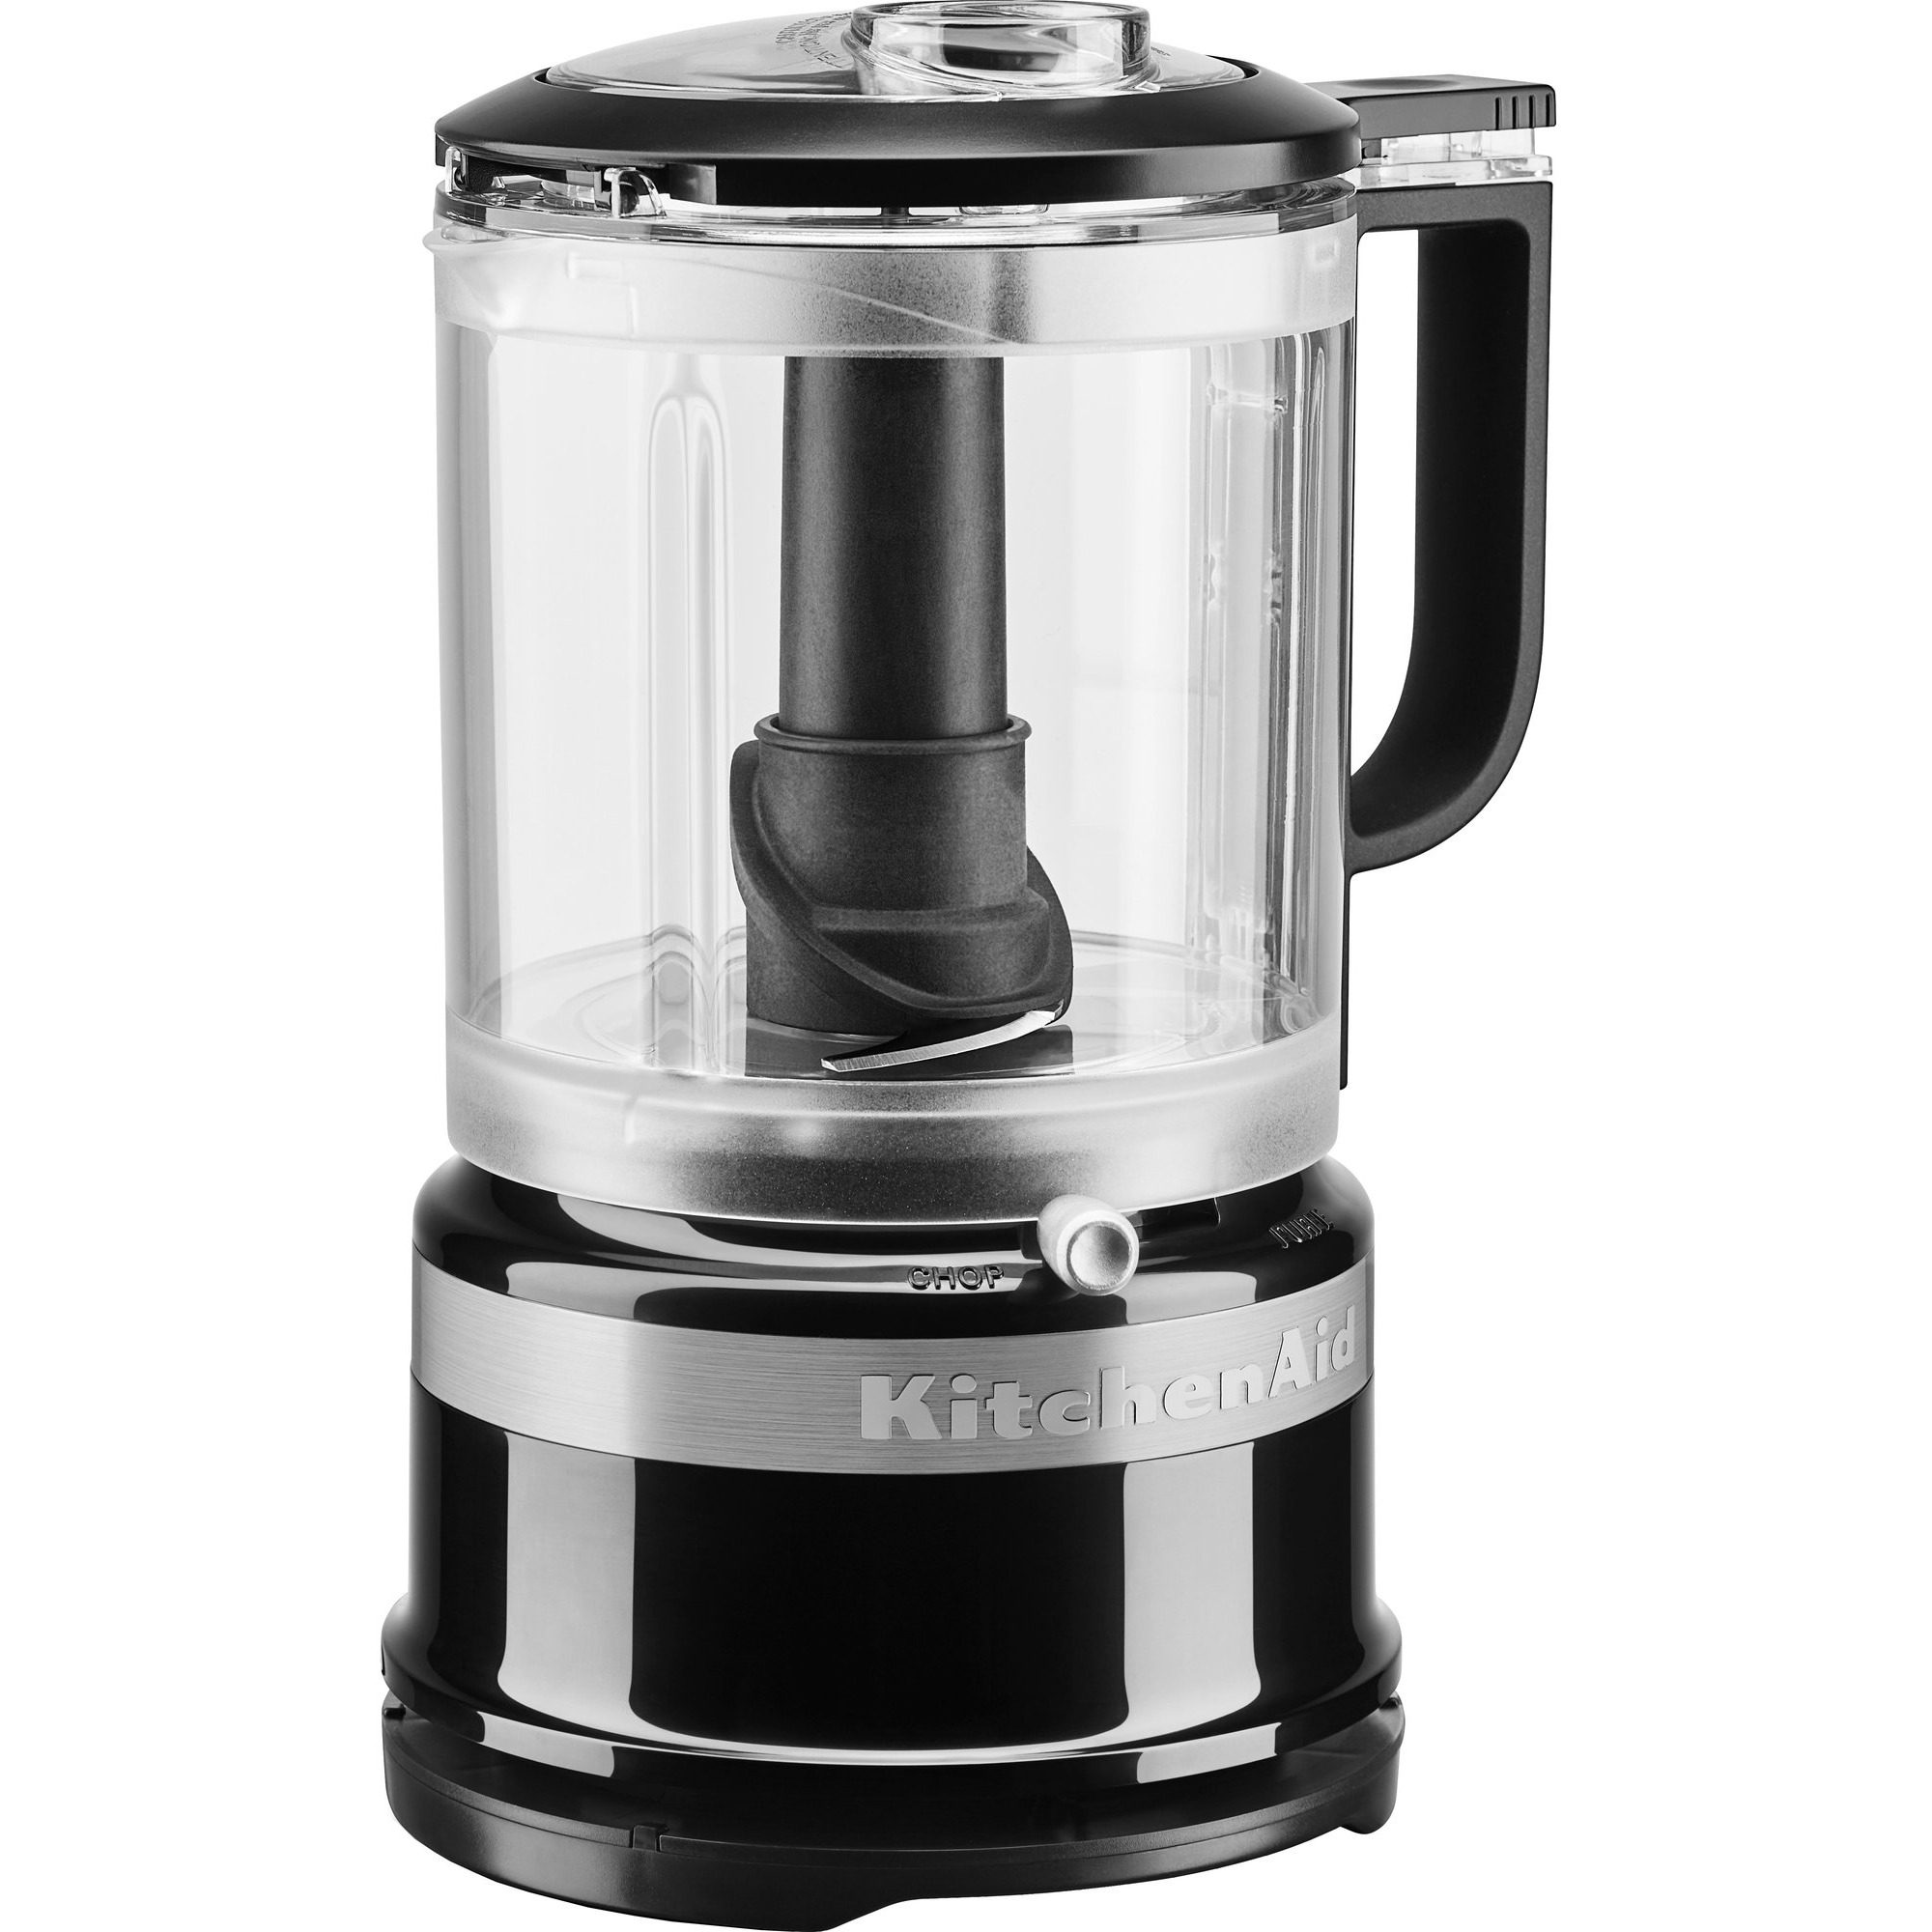 KitchenAid 5KFC0516 119 Liter Mini matberedare Svart